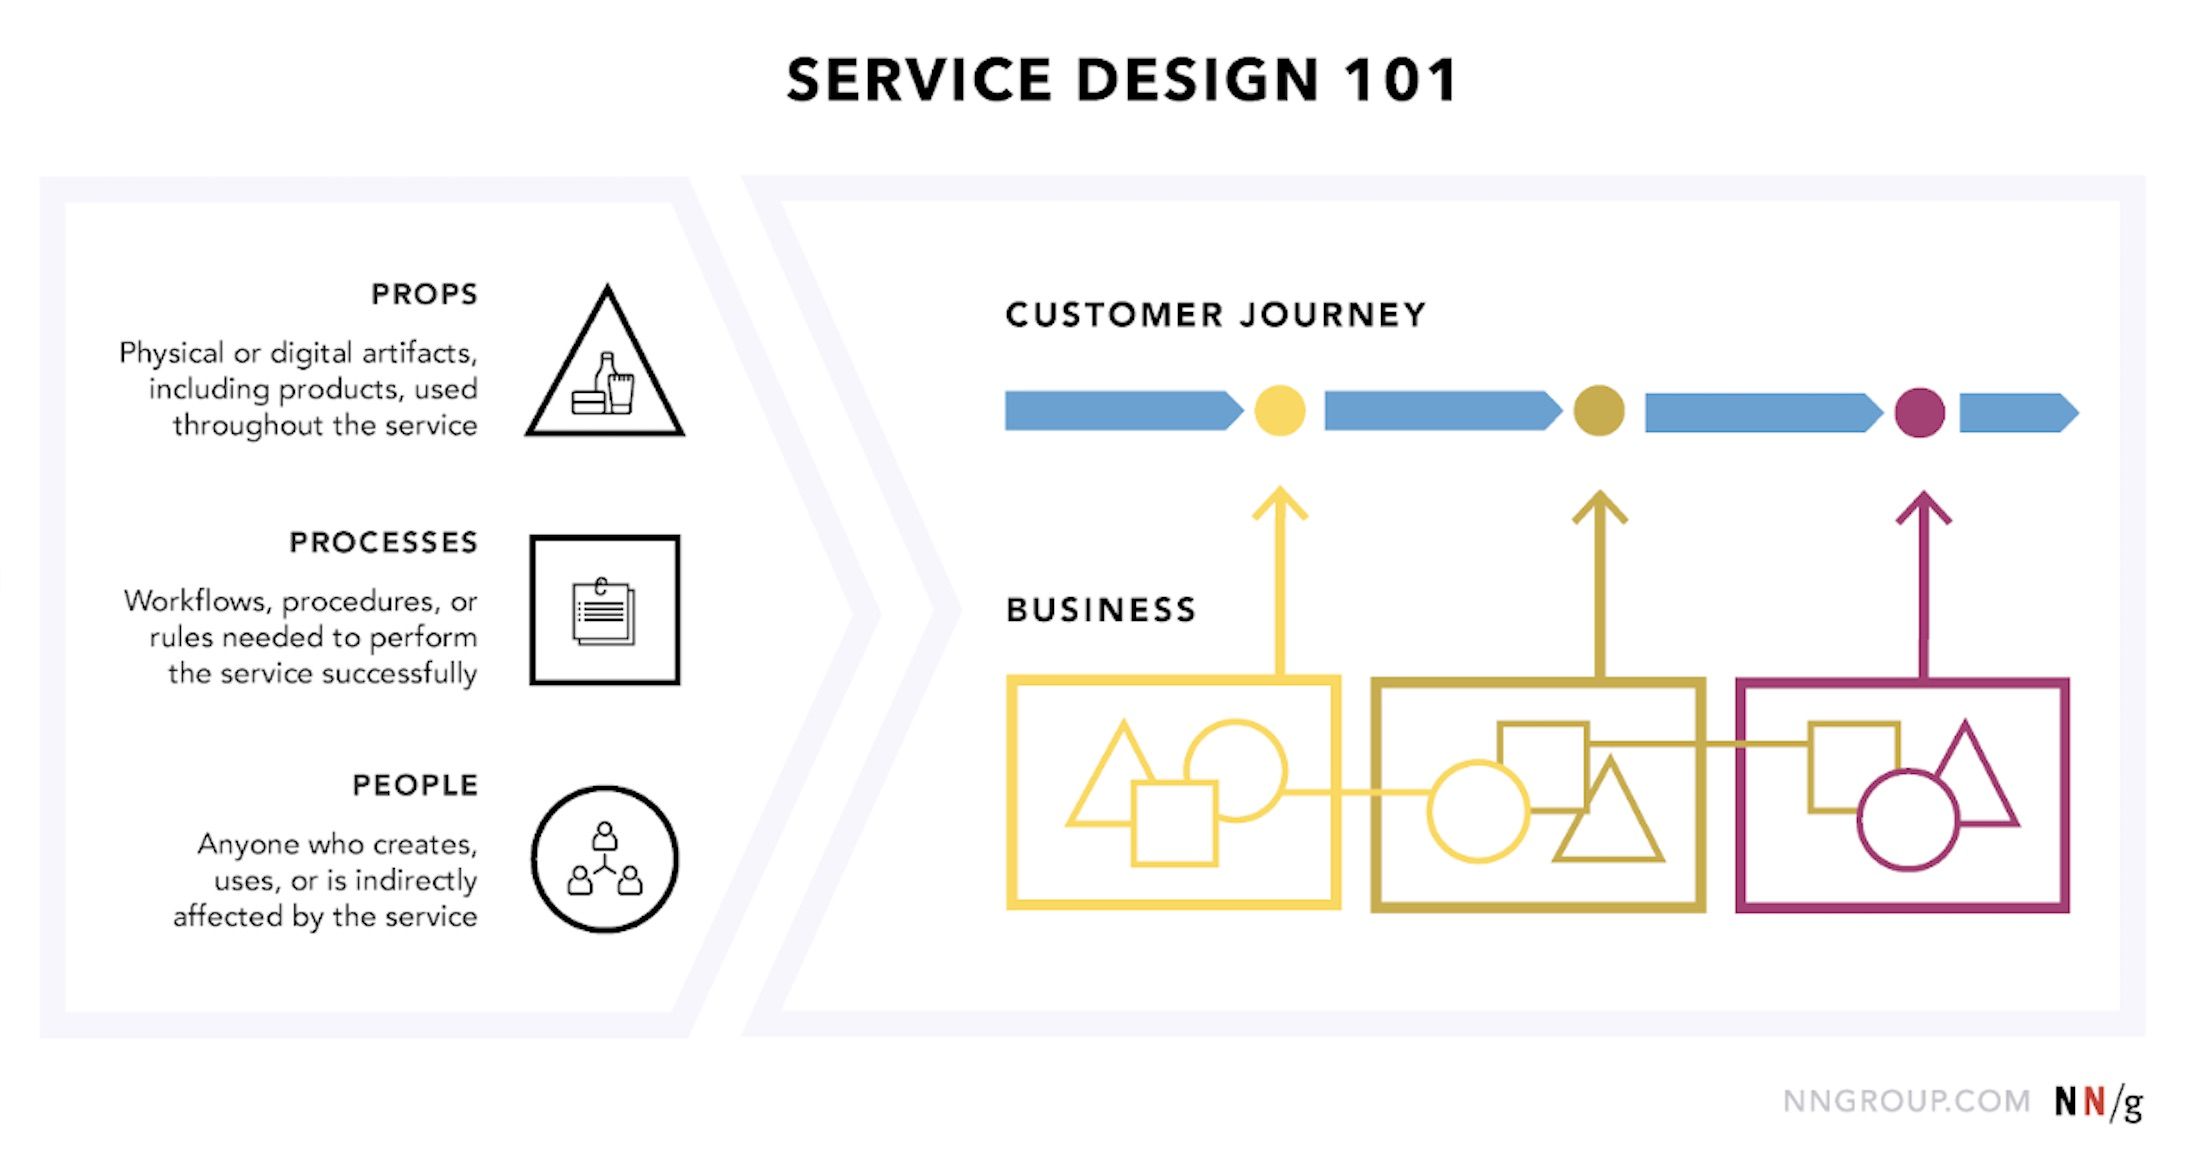 Service Design 101. Props, processes, and people. Props are physical or digital artifacts, including products, used throughout the service. Processes are workflows, procedures, or rules needed to perform the service successfully. People are anyone who creates, uses, or is indirectly affected by the service. These and the business are then mapped to the customer journey.